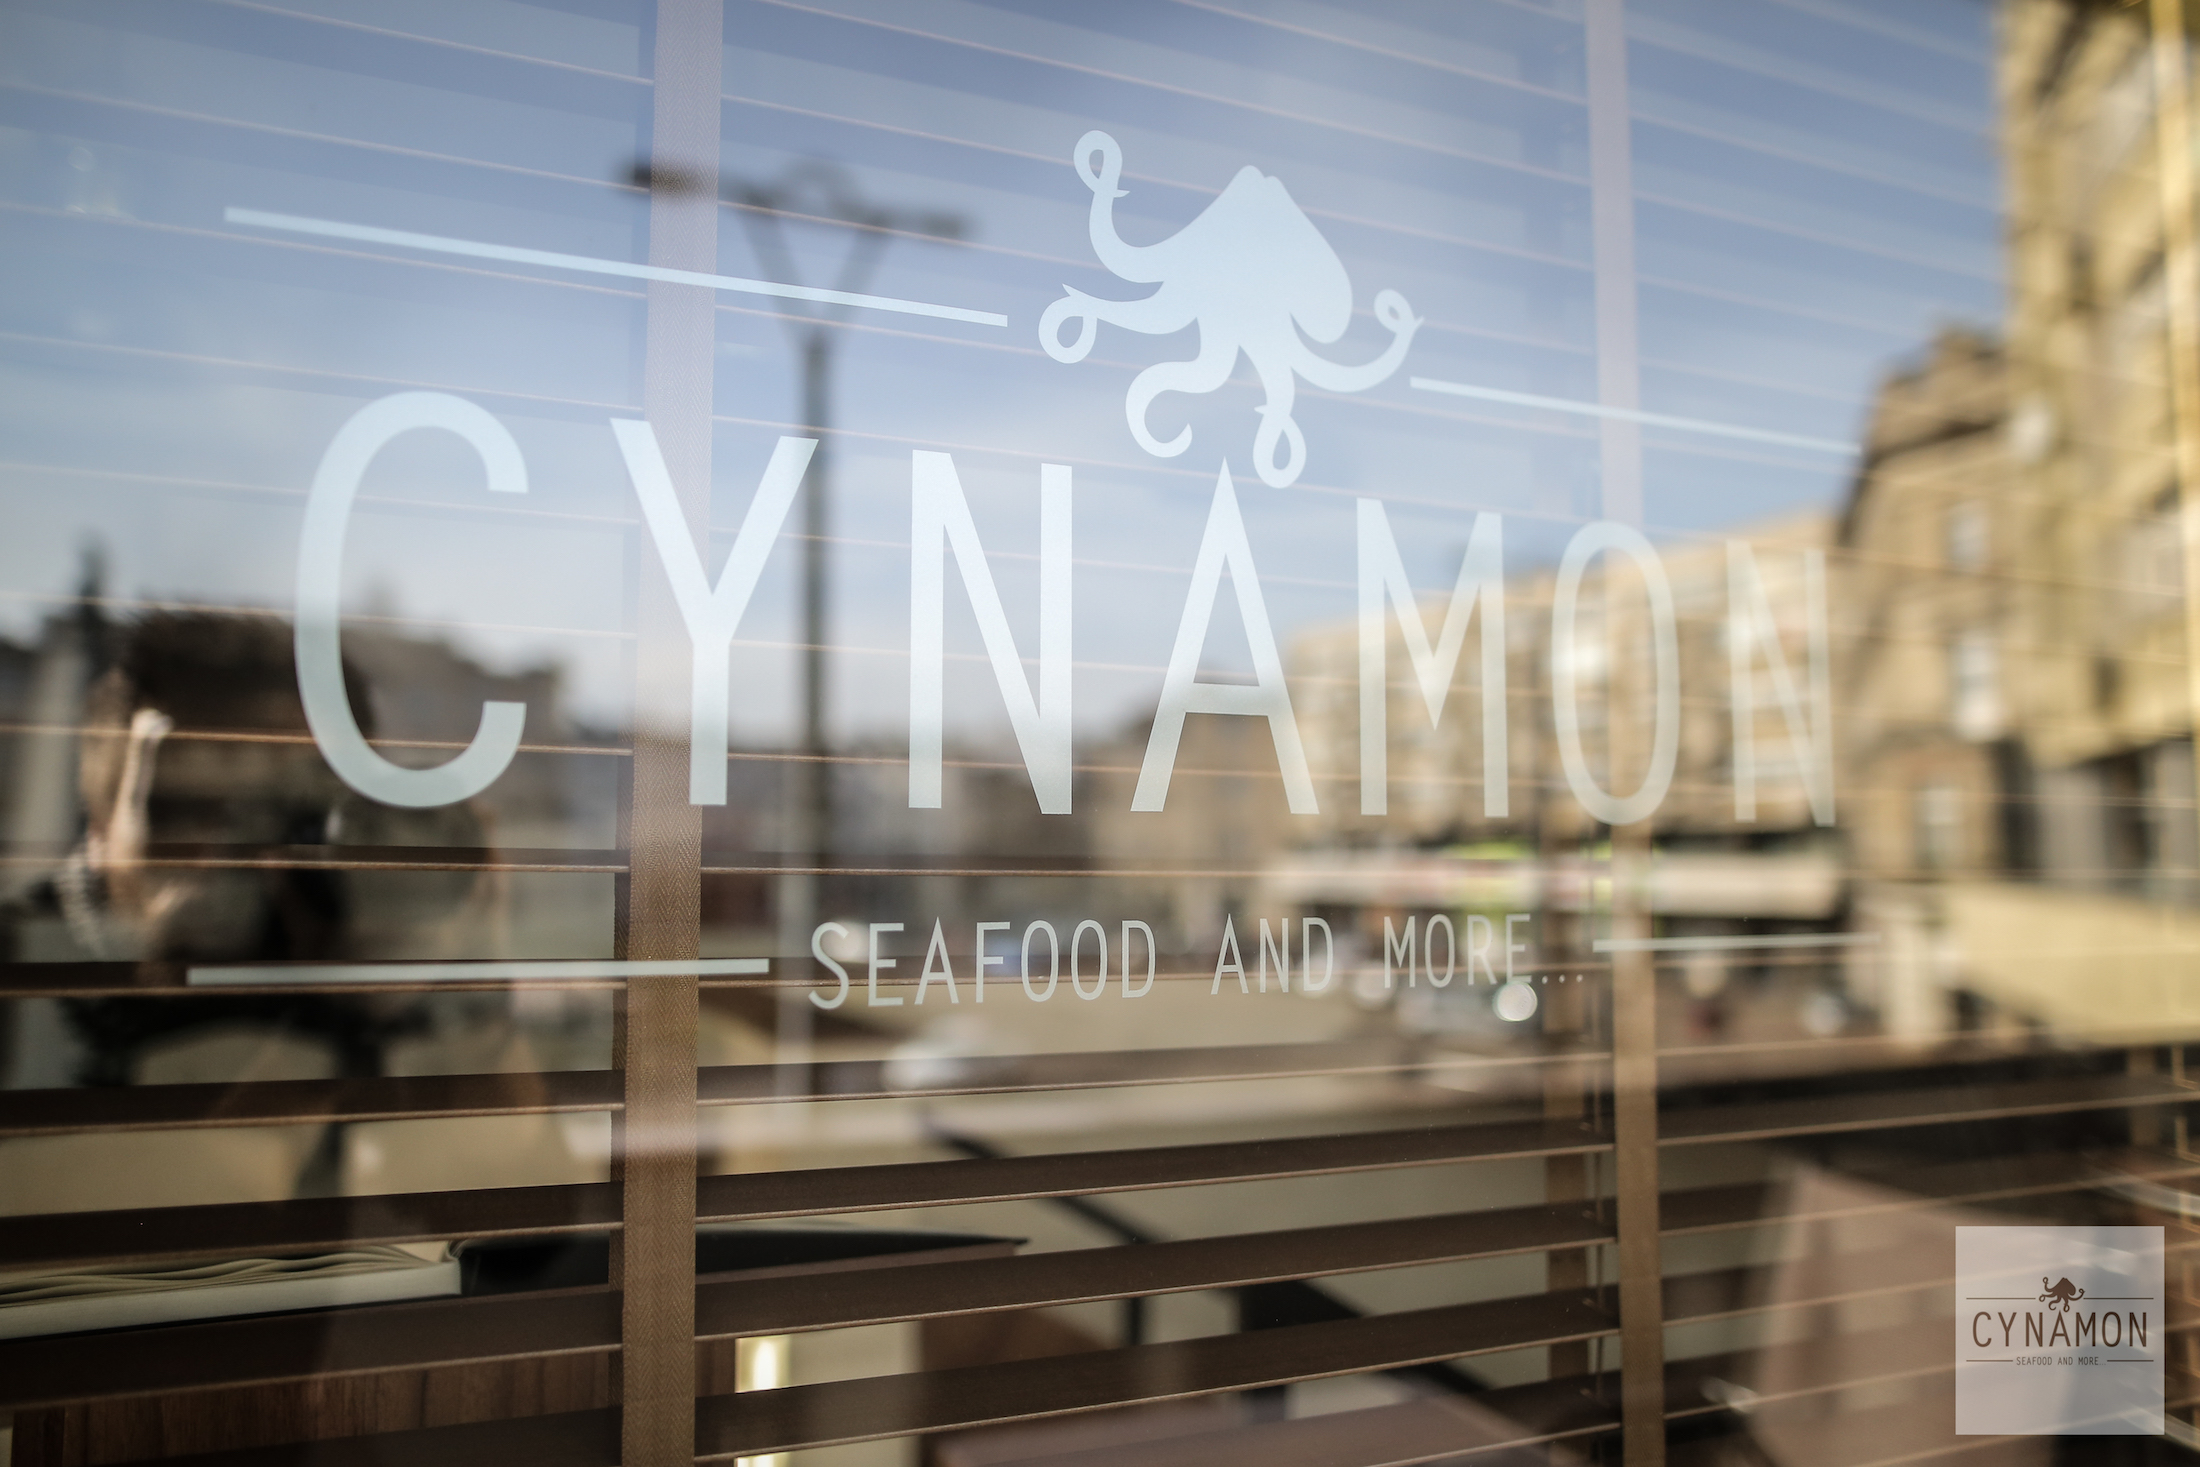 Cynamon Seafood And More